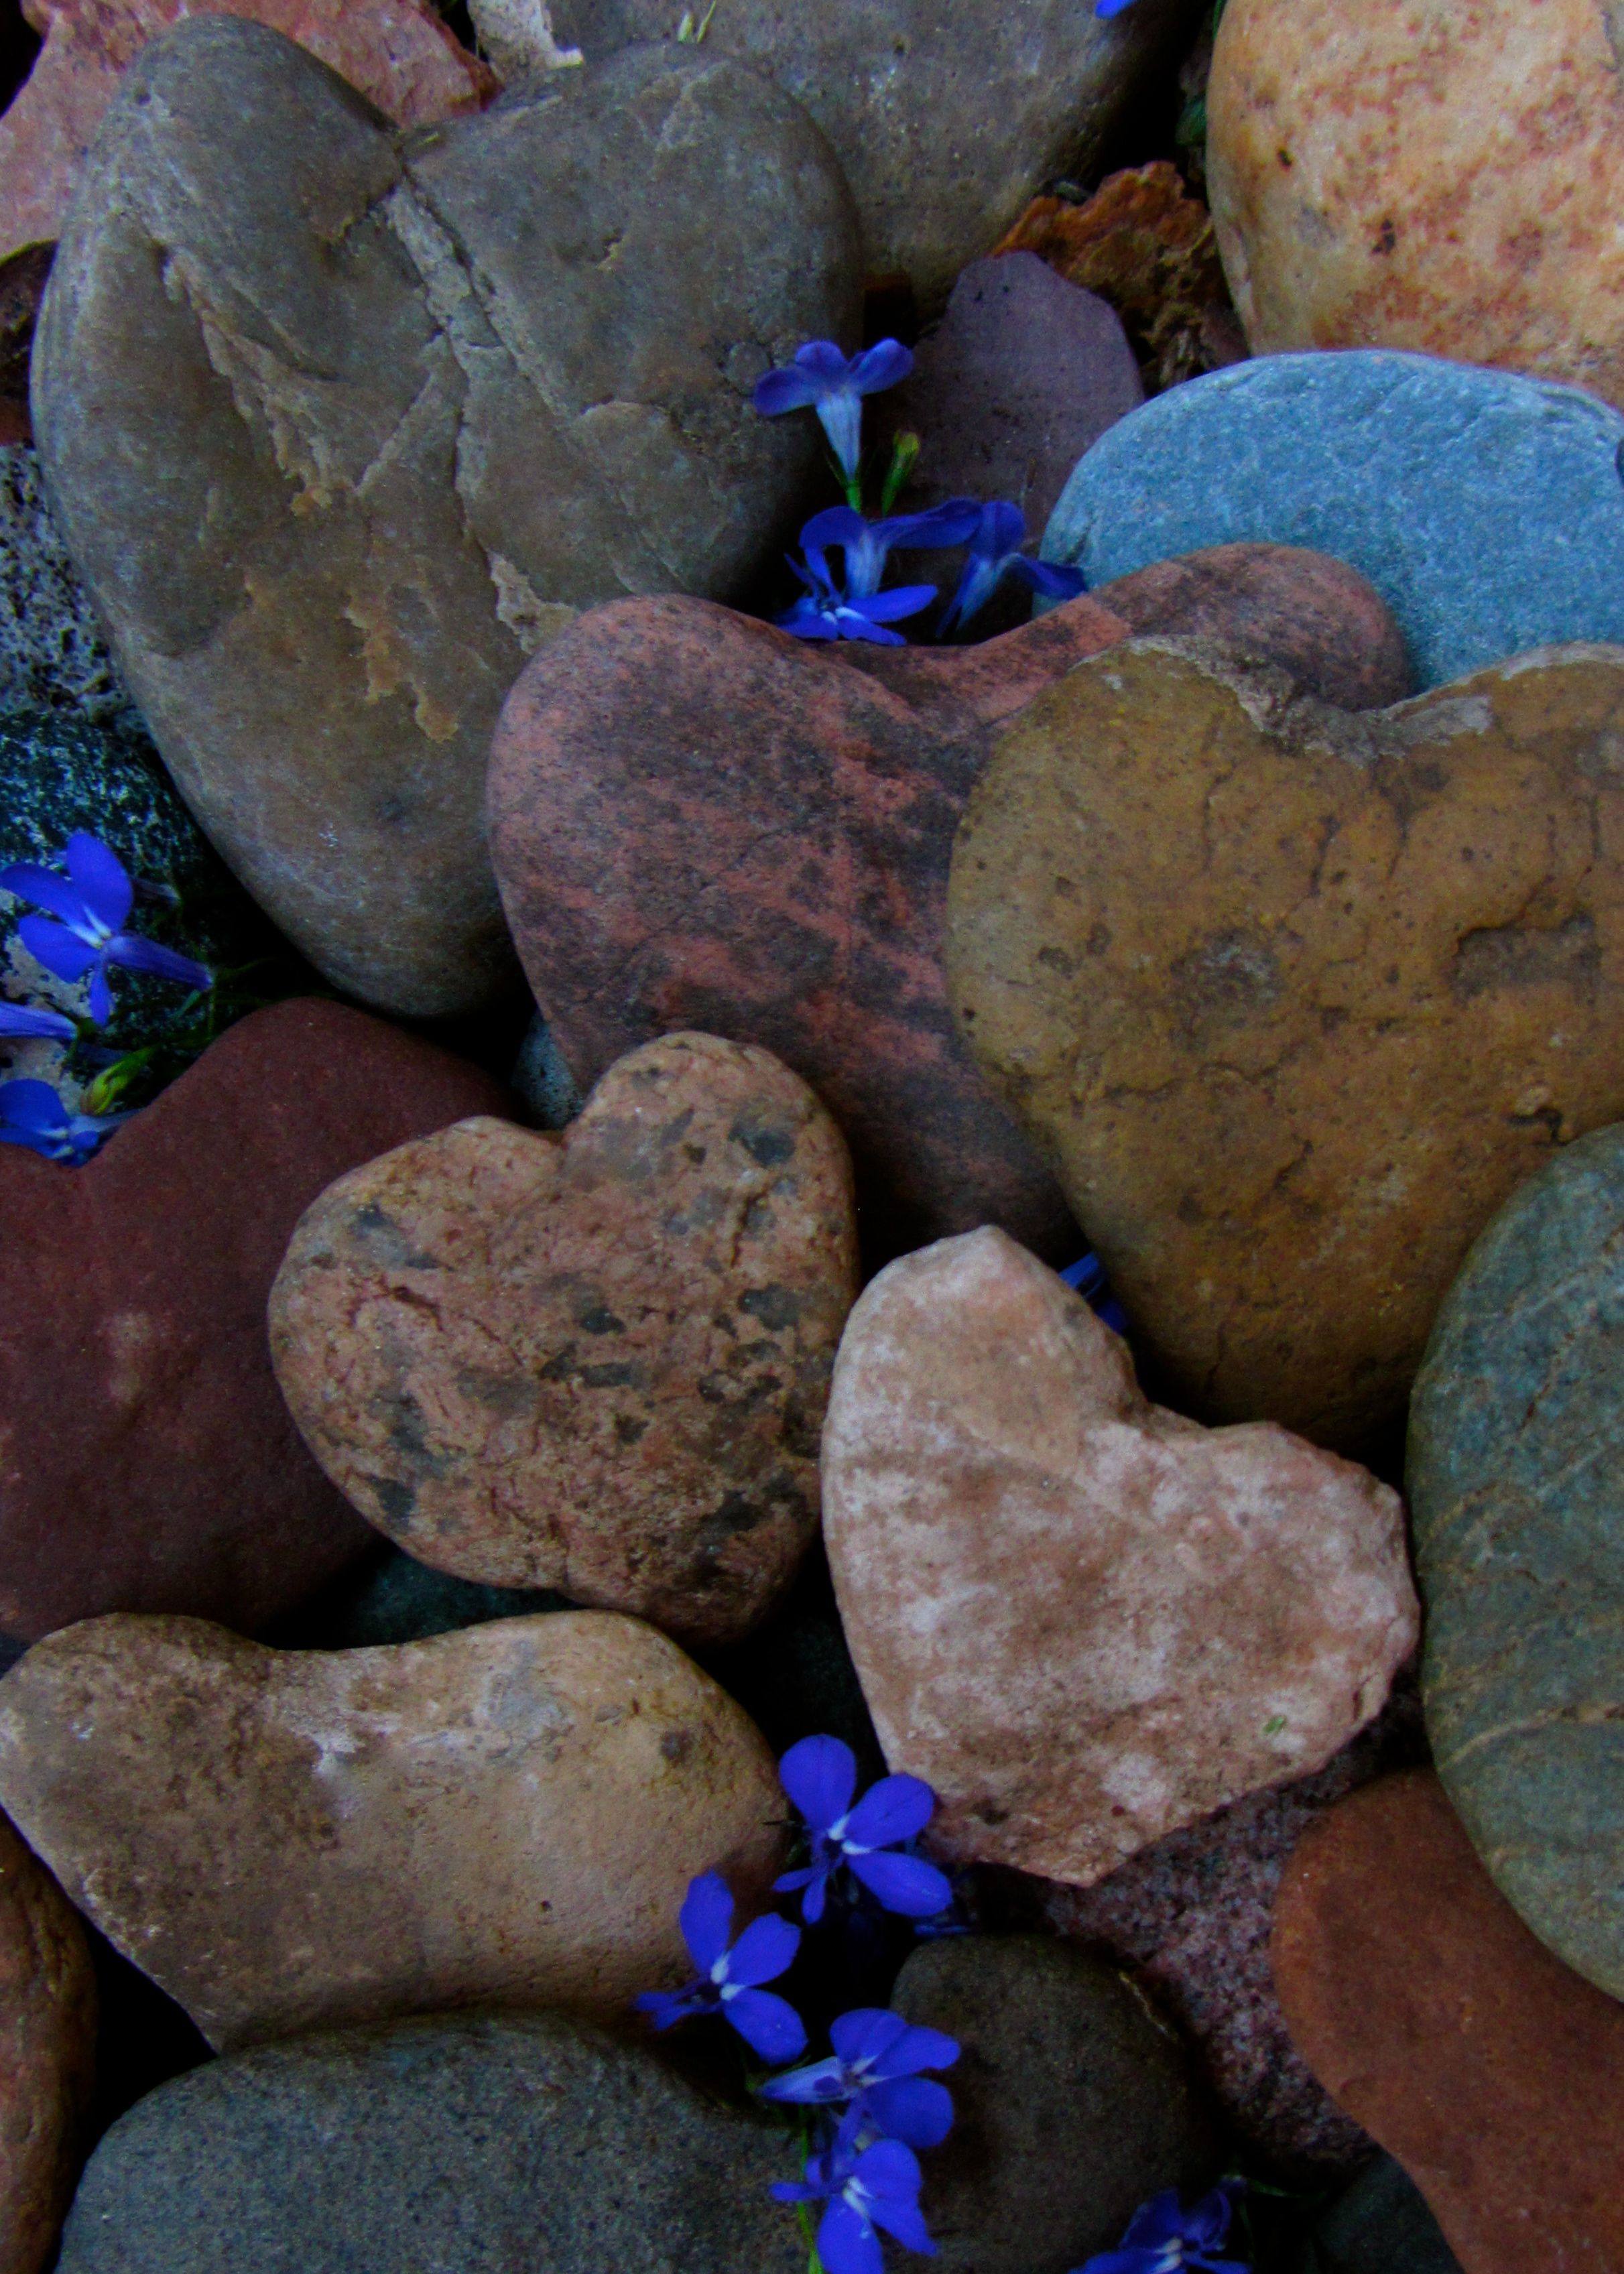 I have so many heart rock's I want to find a cute way to display them @Joann Luna  any Idea's for me???